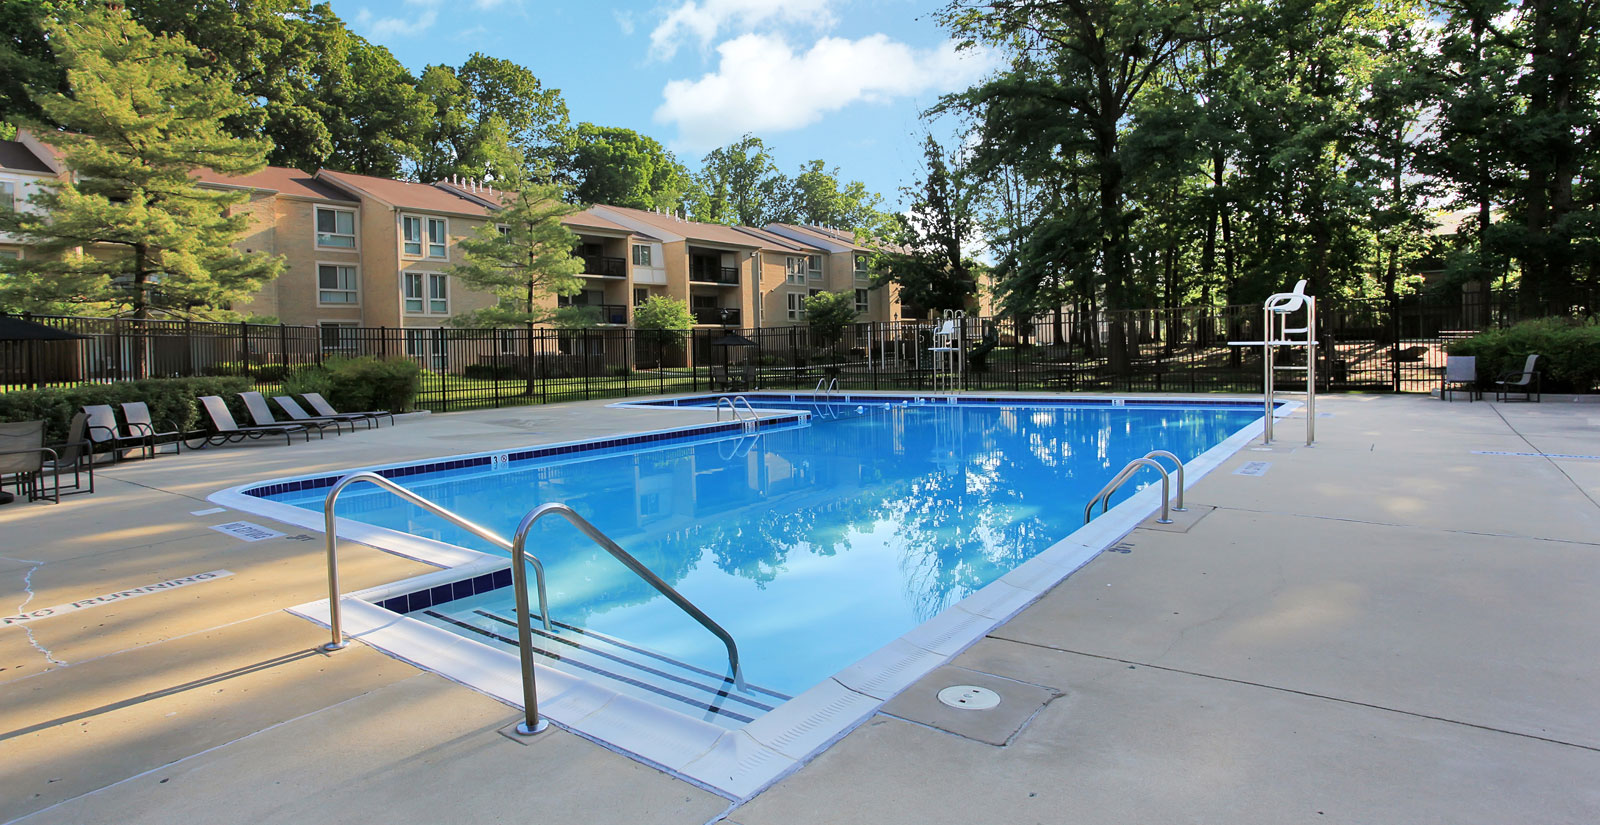 Swimming pool at Gaithersburg apartments